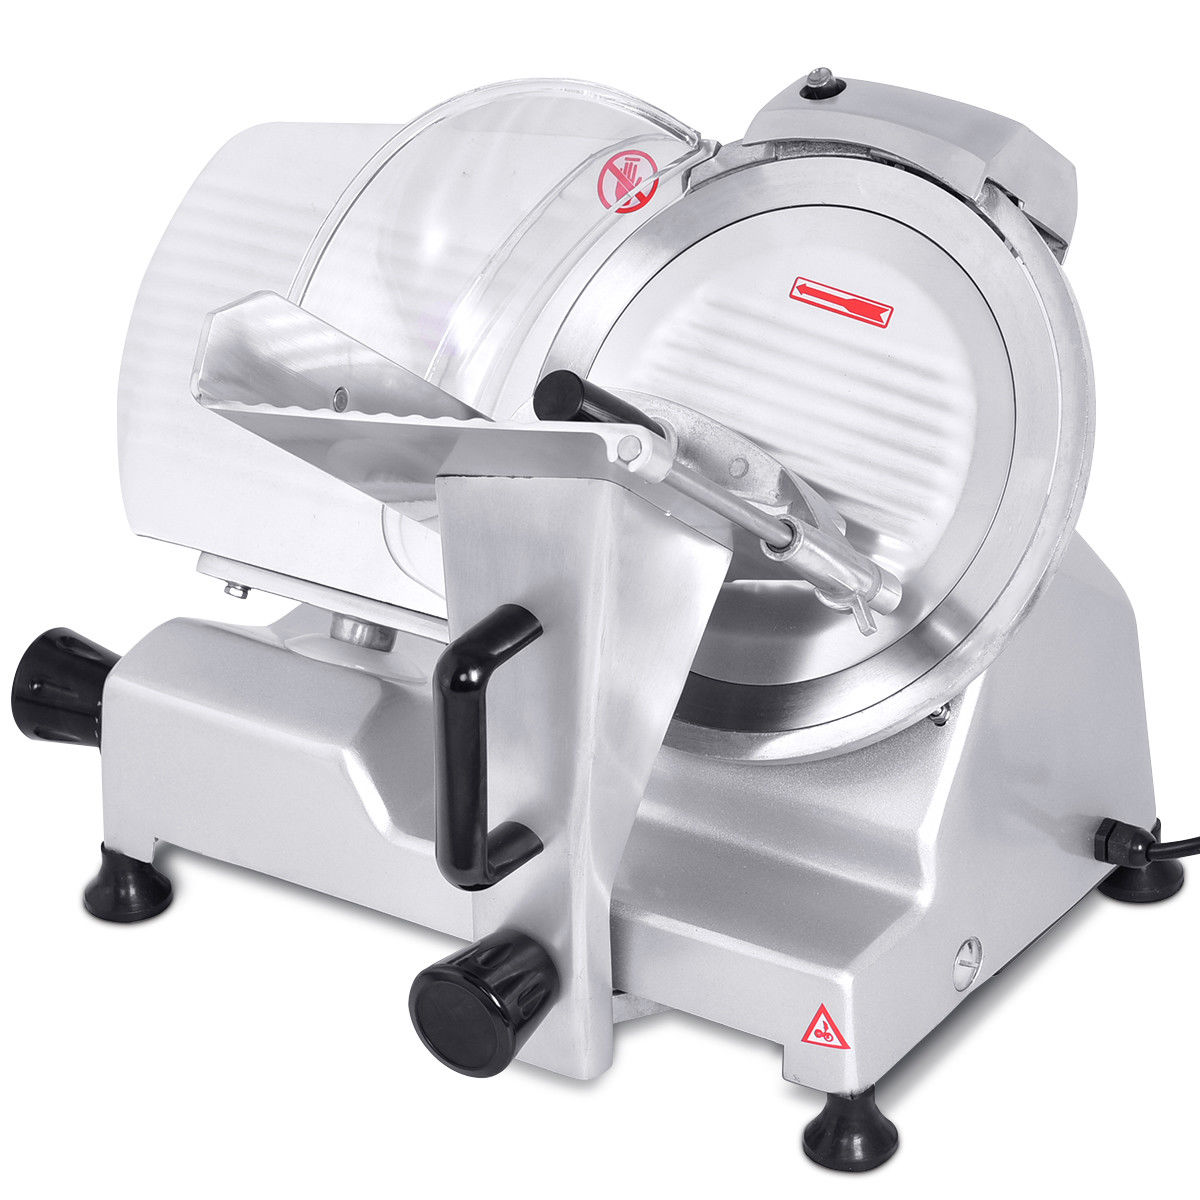 "Costway 10"" Blade Commercial Meat Slicer Deli Meat Cheese Food Slicer Industrial Quality"